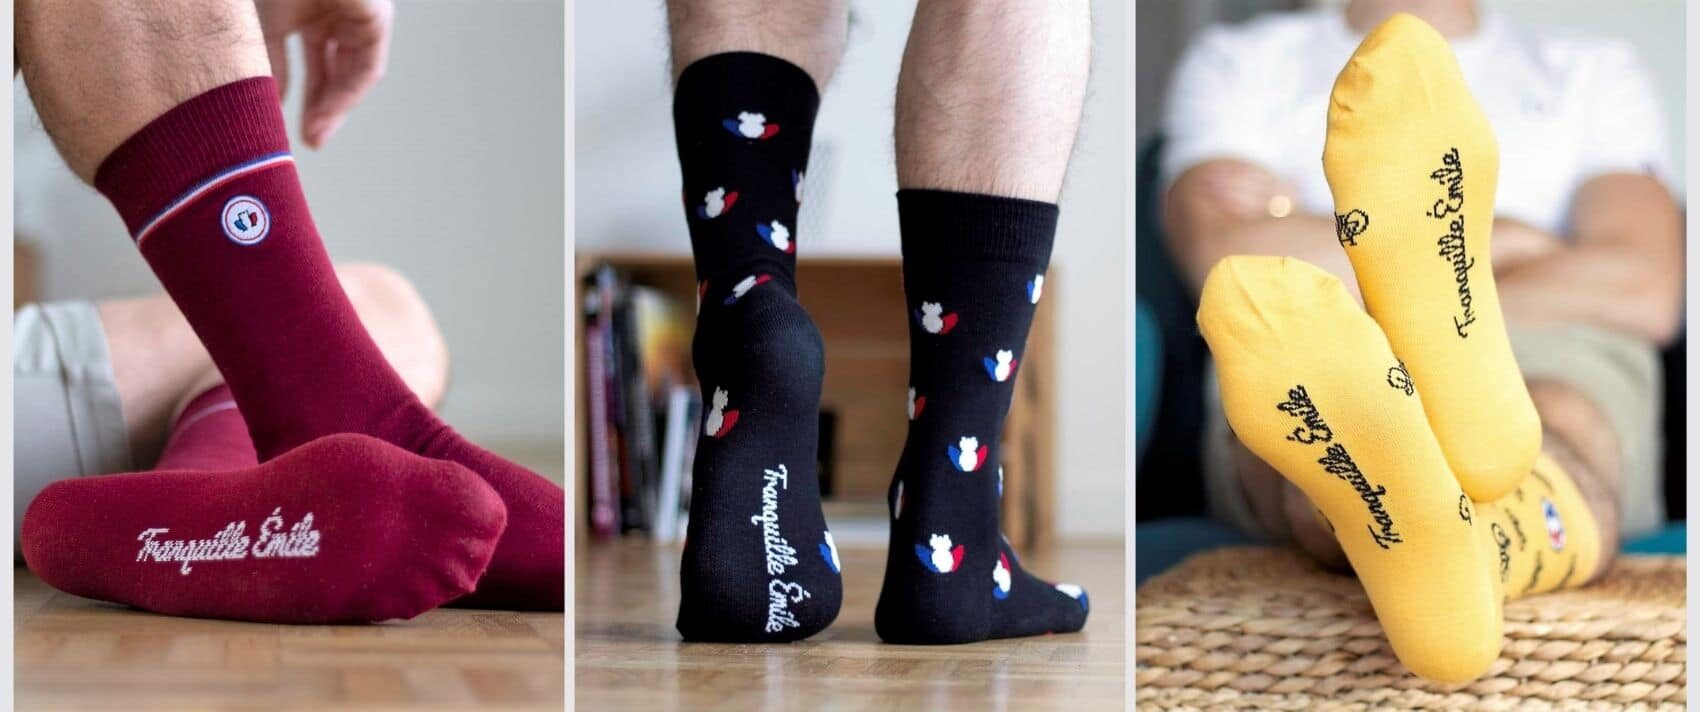 chaussettes-made-in-france-banniere-2